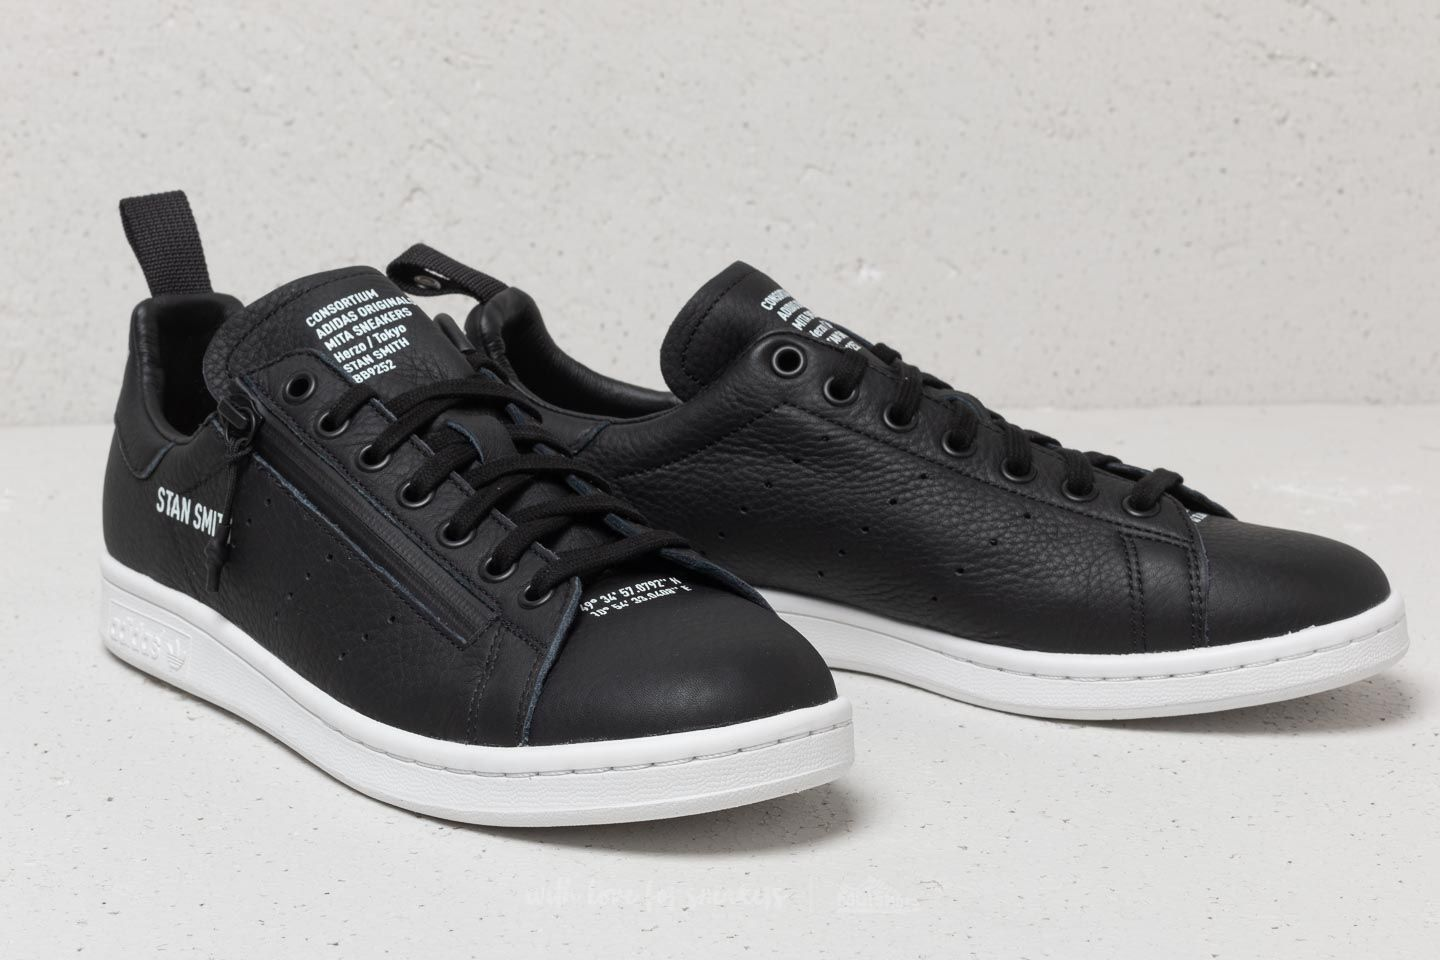 official photos 00a28 7517d discount code for adidas stan smith black and white 31e9e 07a1a